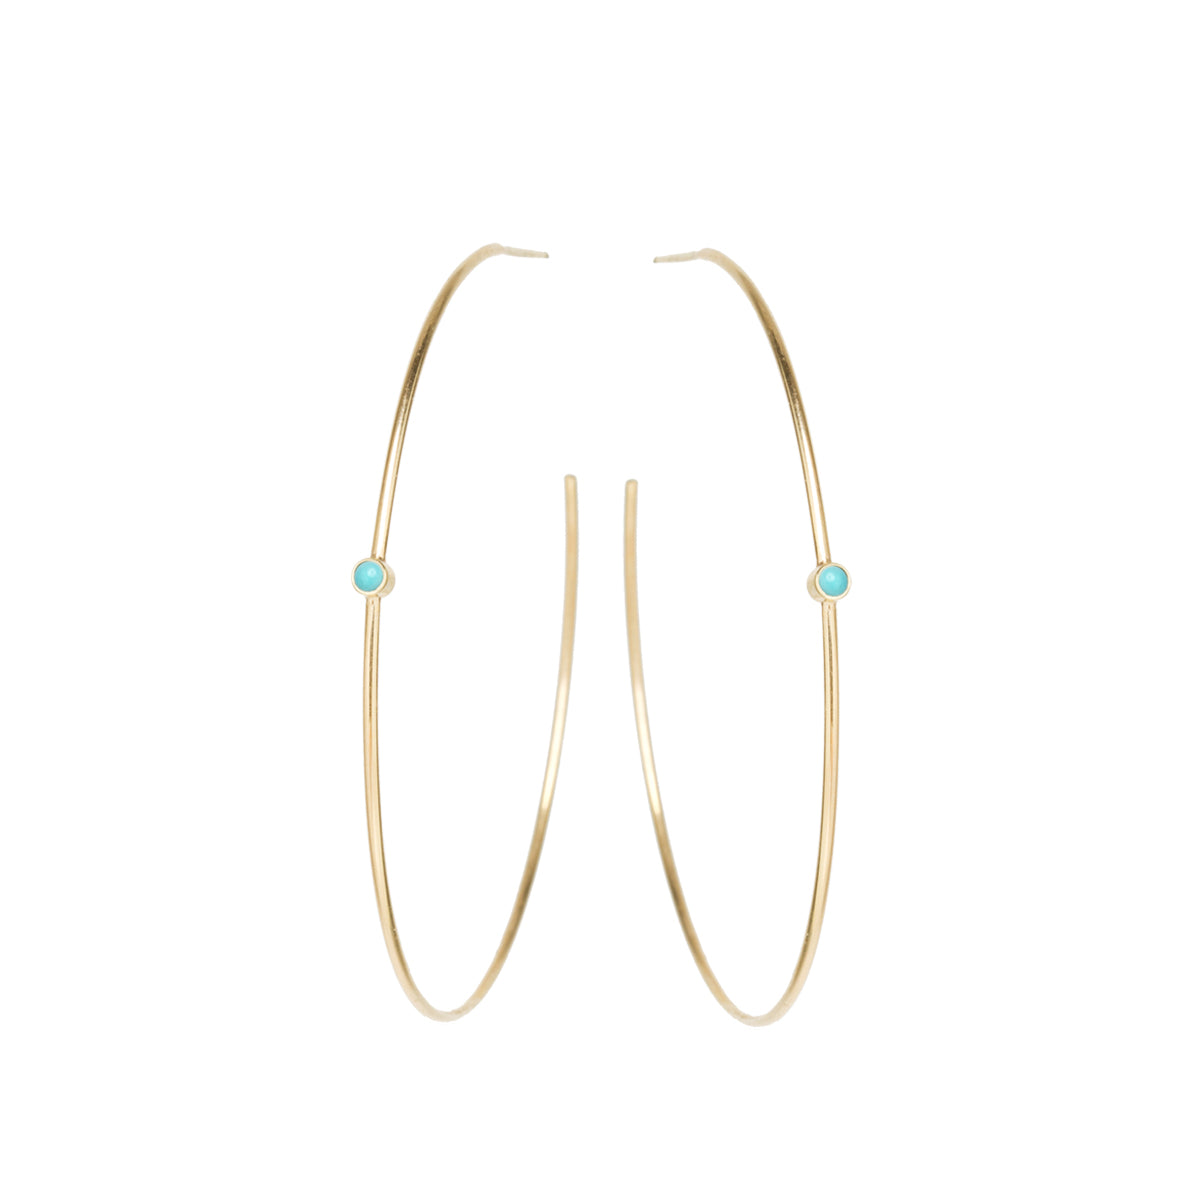 Zoë Chicco 14kt Yellow Gold Turquoise Center Medium Thin Hoop Earrings